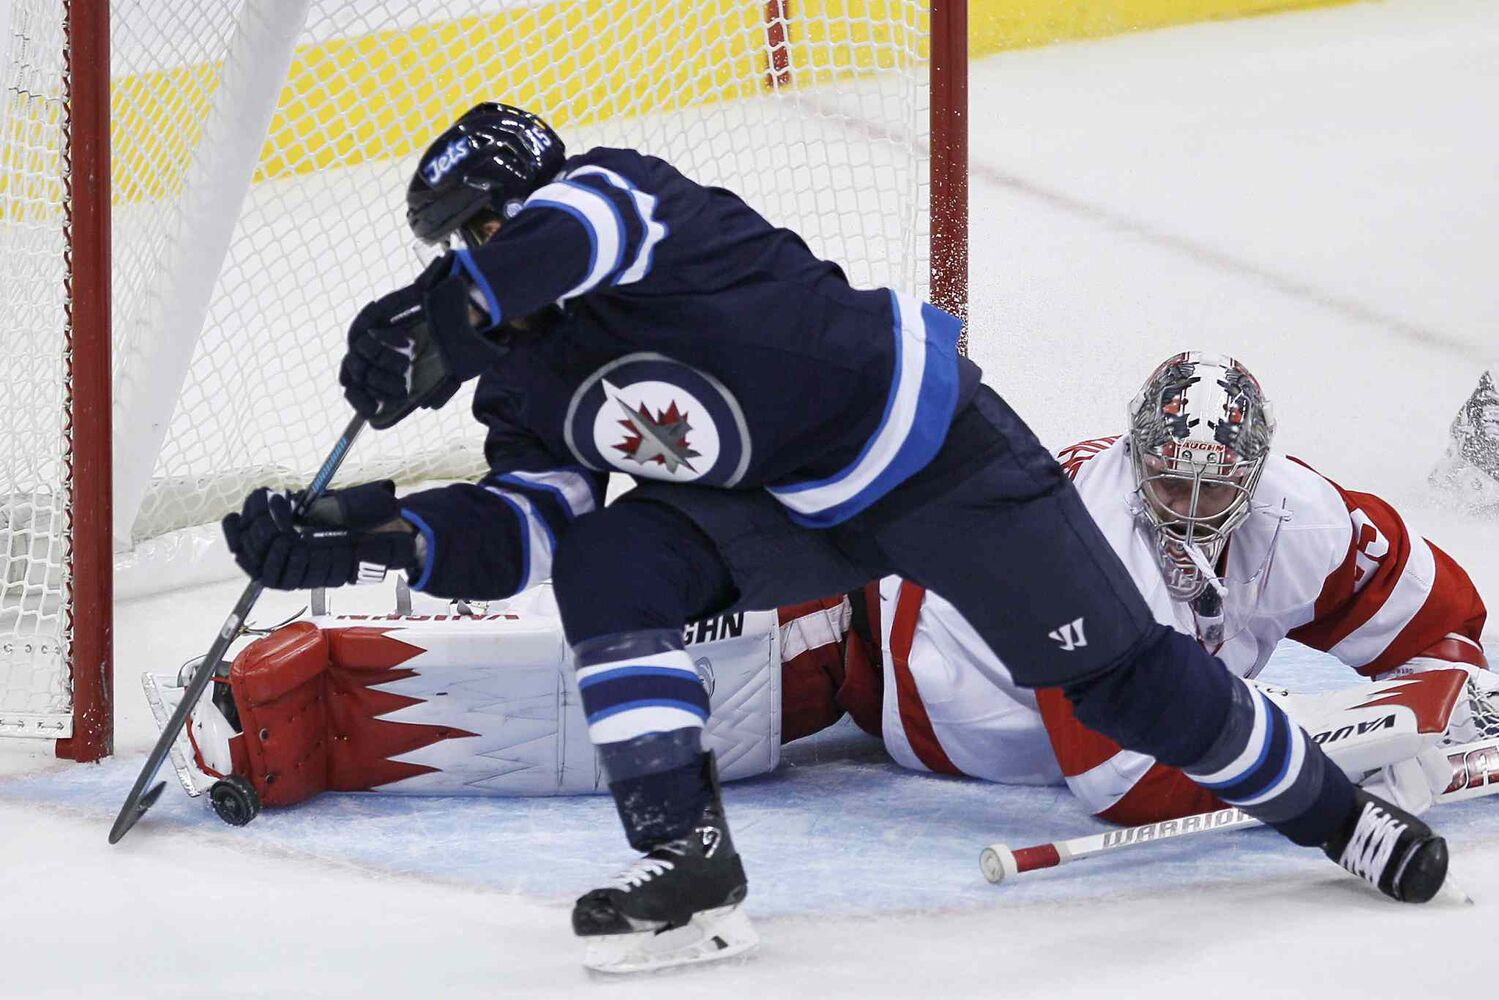 Winnipeg Jets forward Matt Halishchuk is stopped by Detroit Red Wings goaltender Jimmy Howard in the first period. (JOHN WOODS / THE CANADIAN PRESS)